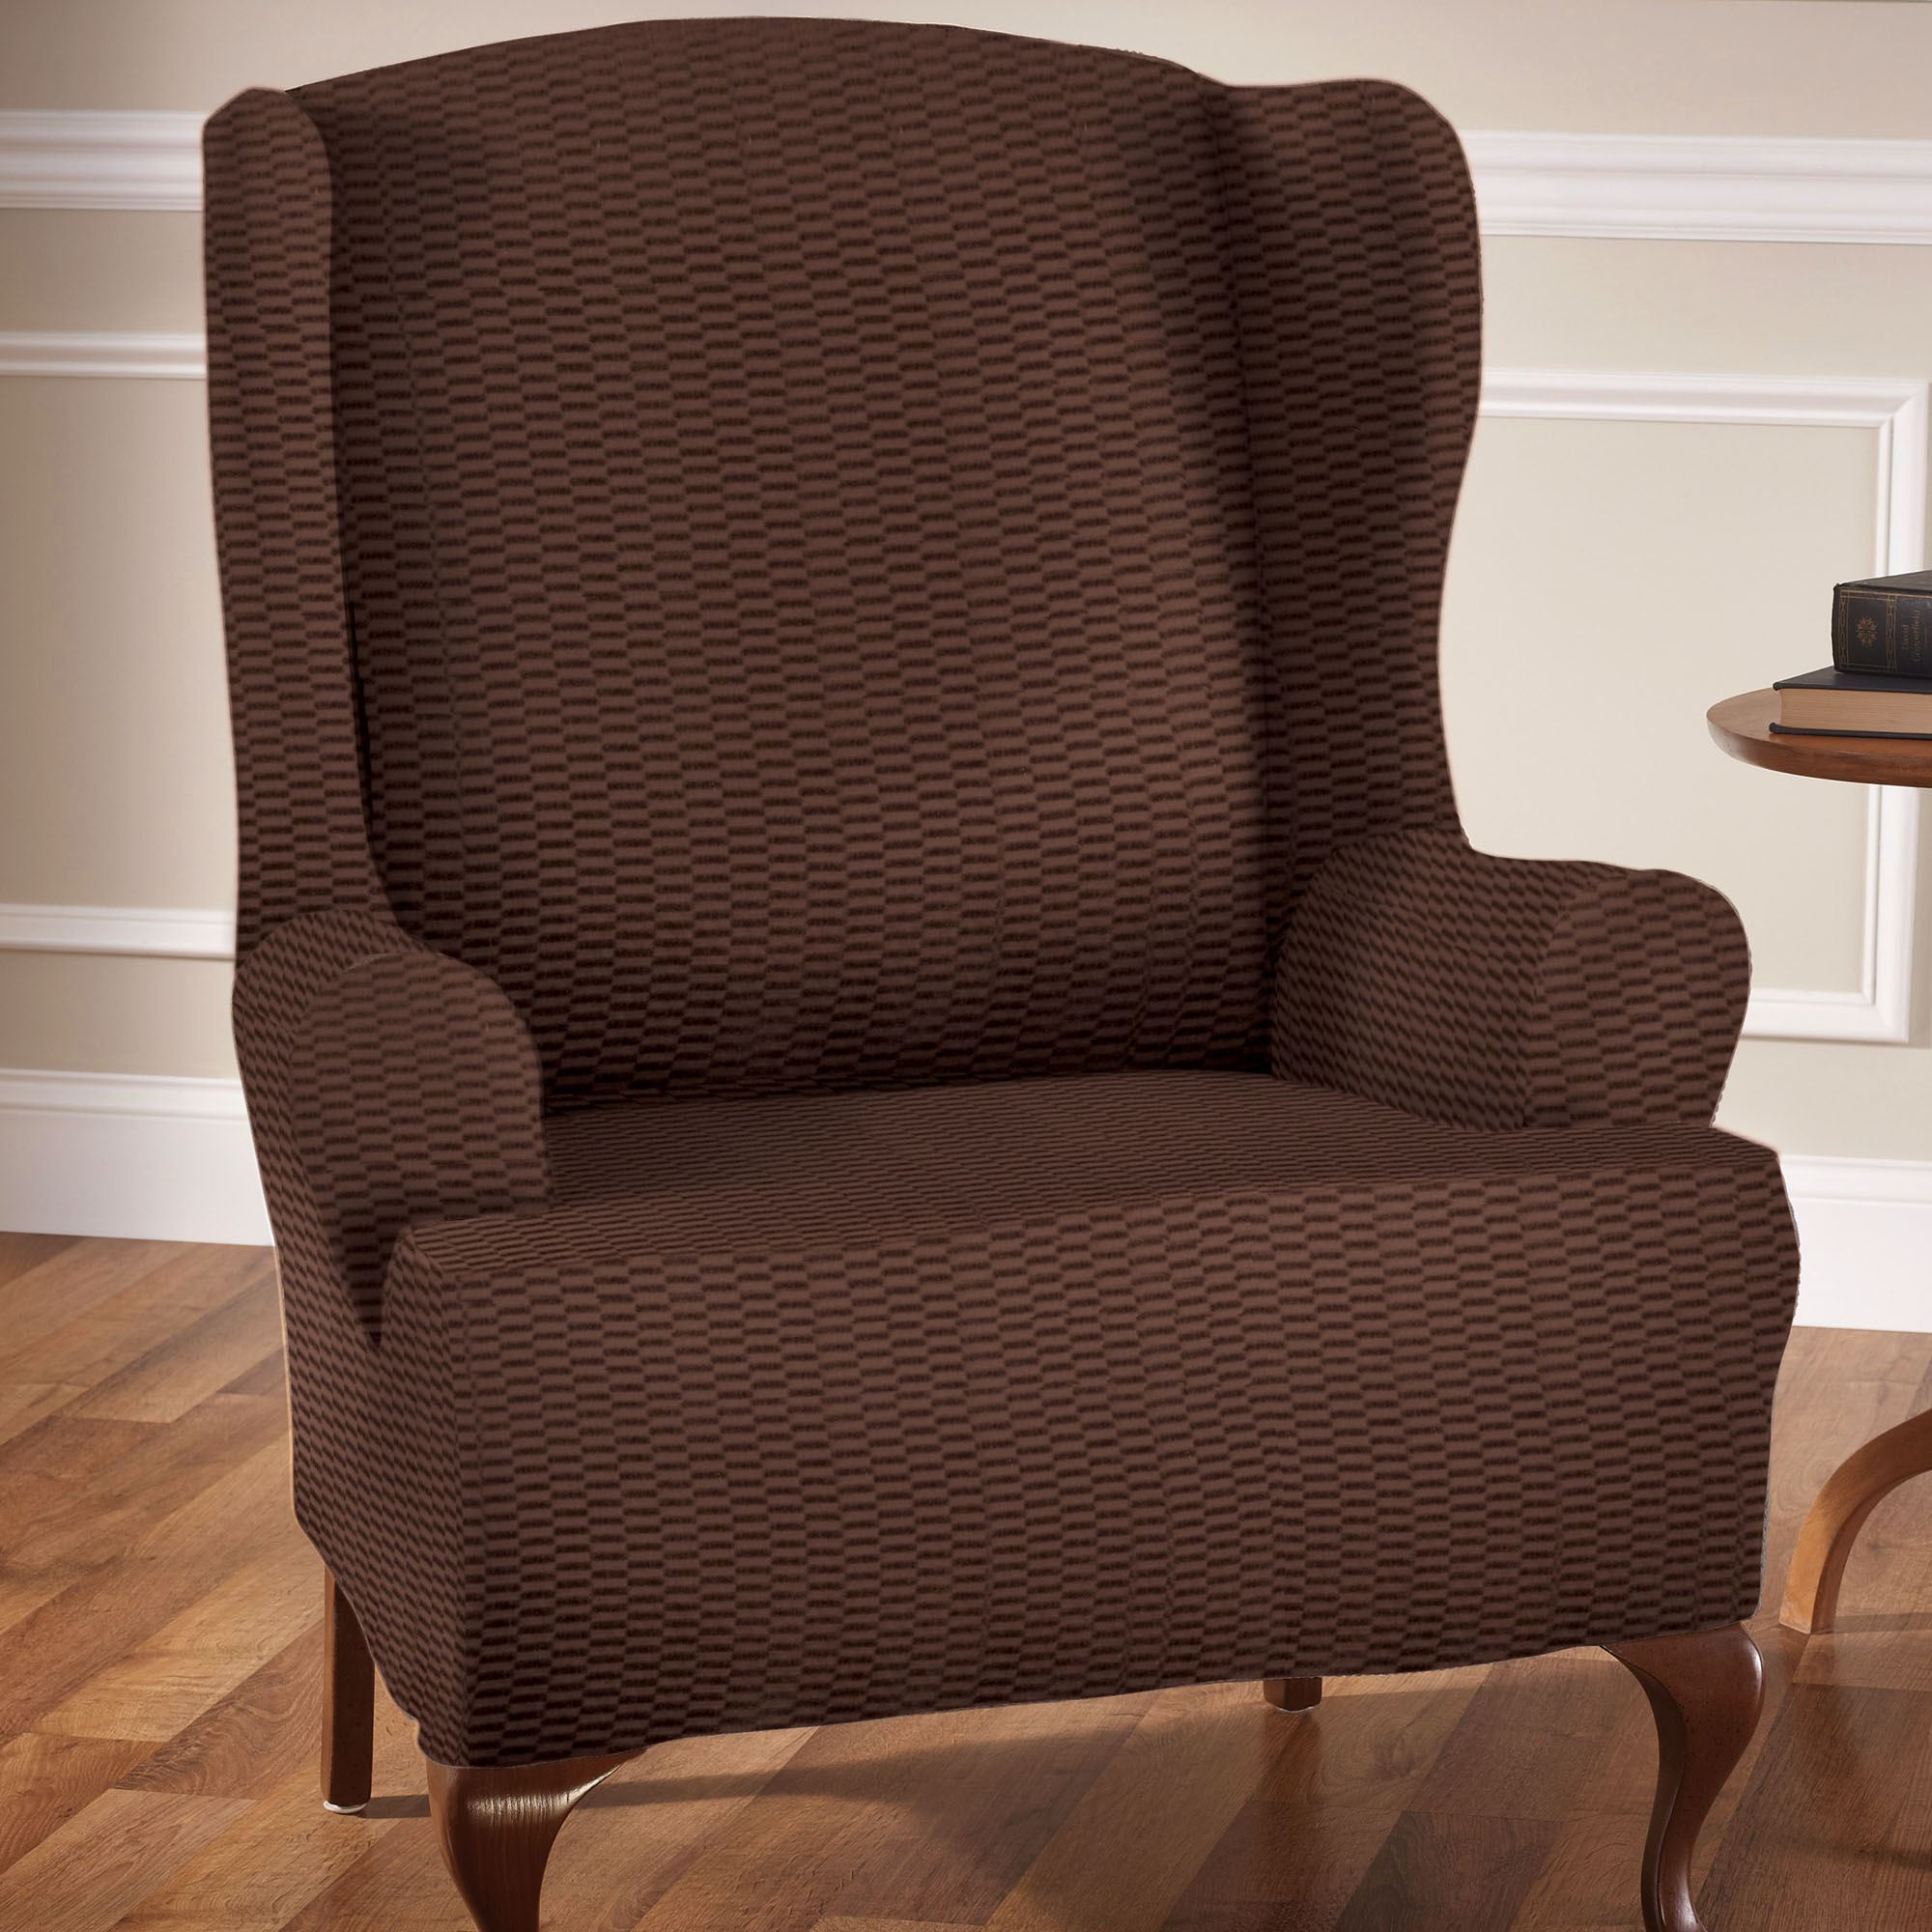 lift walmart pique stretch com recliner ip sure for slipcovers recliners fit medium slipcover